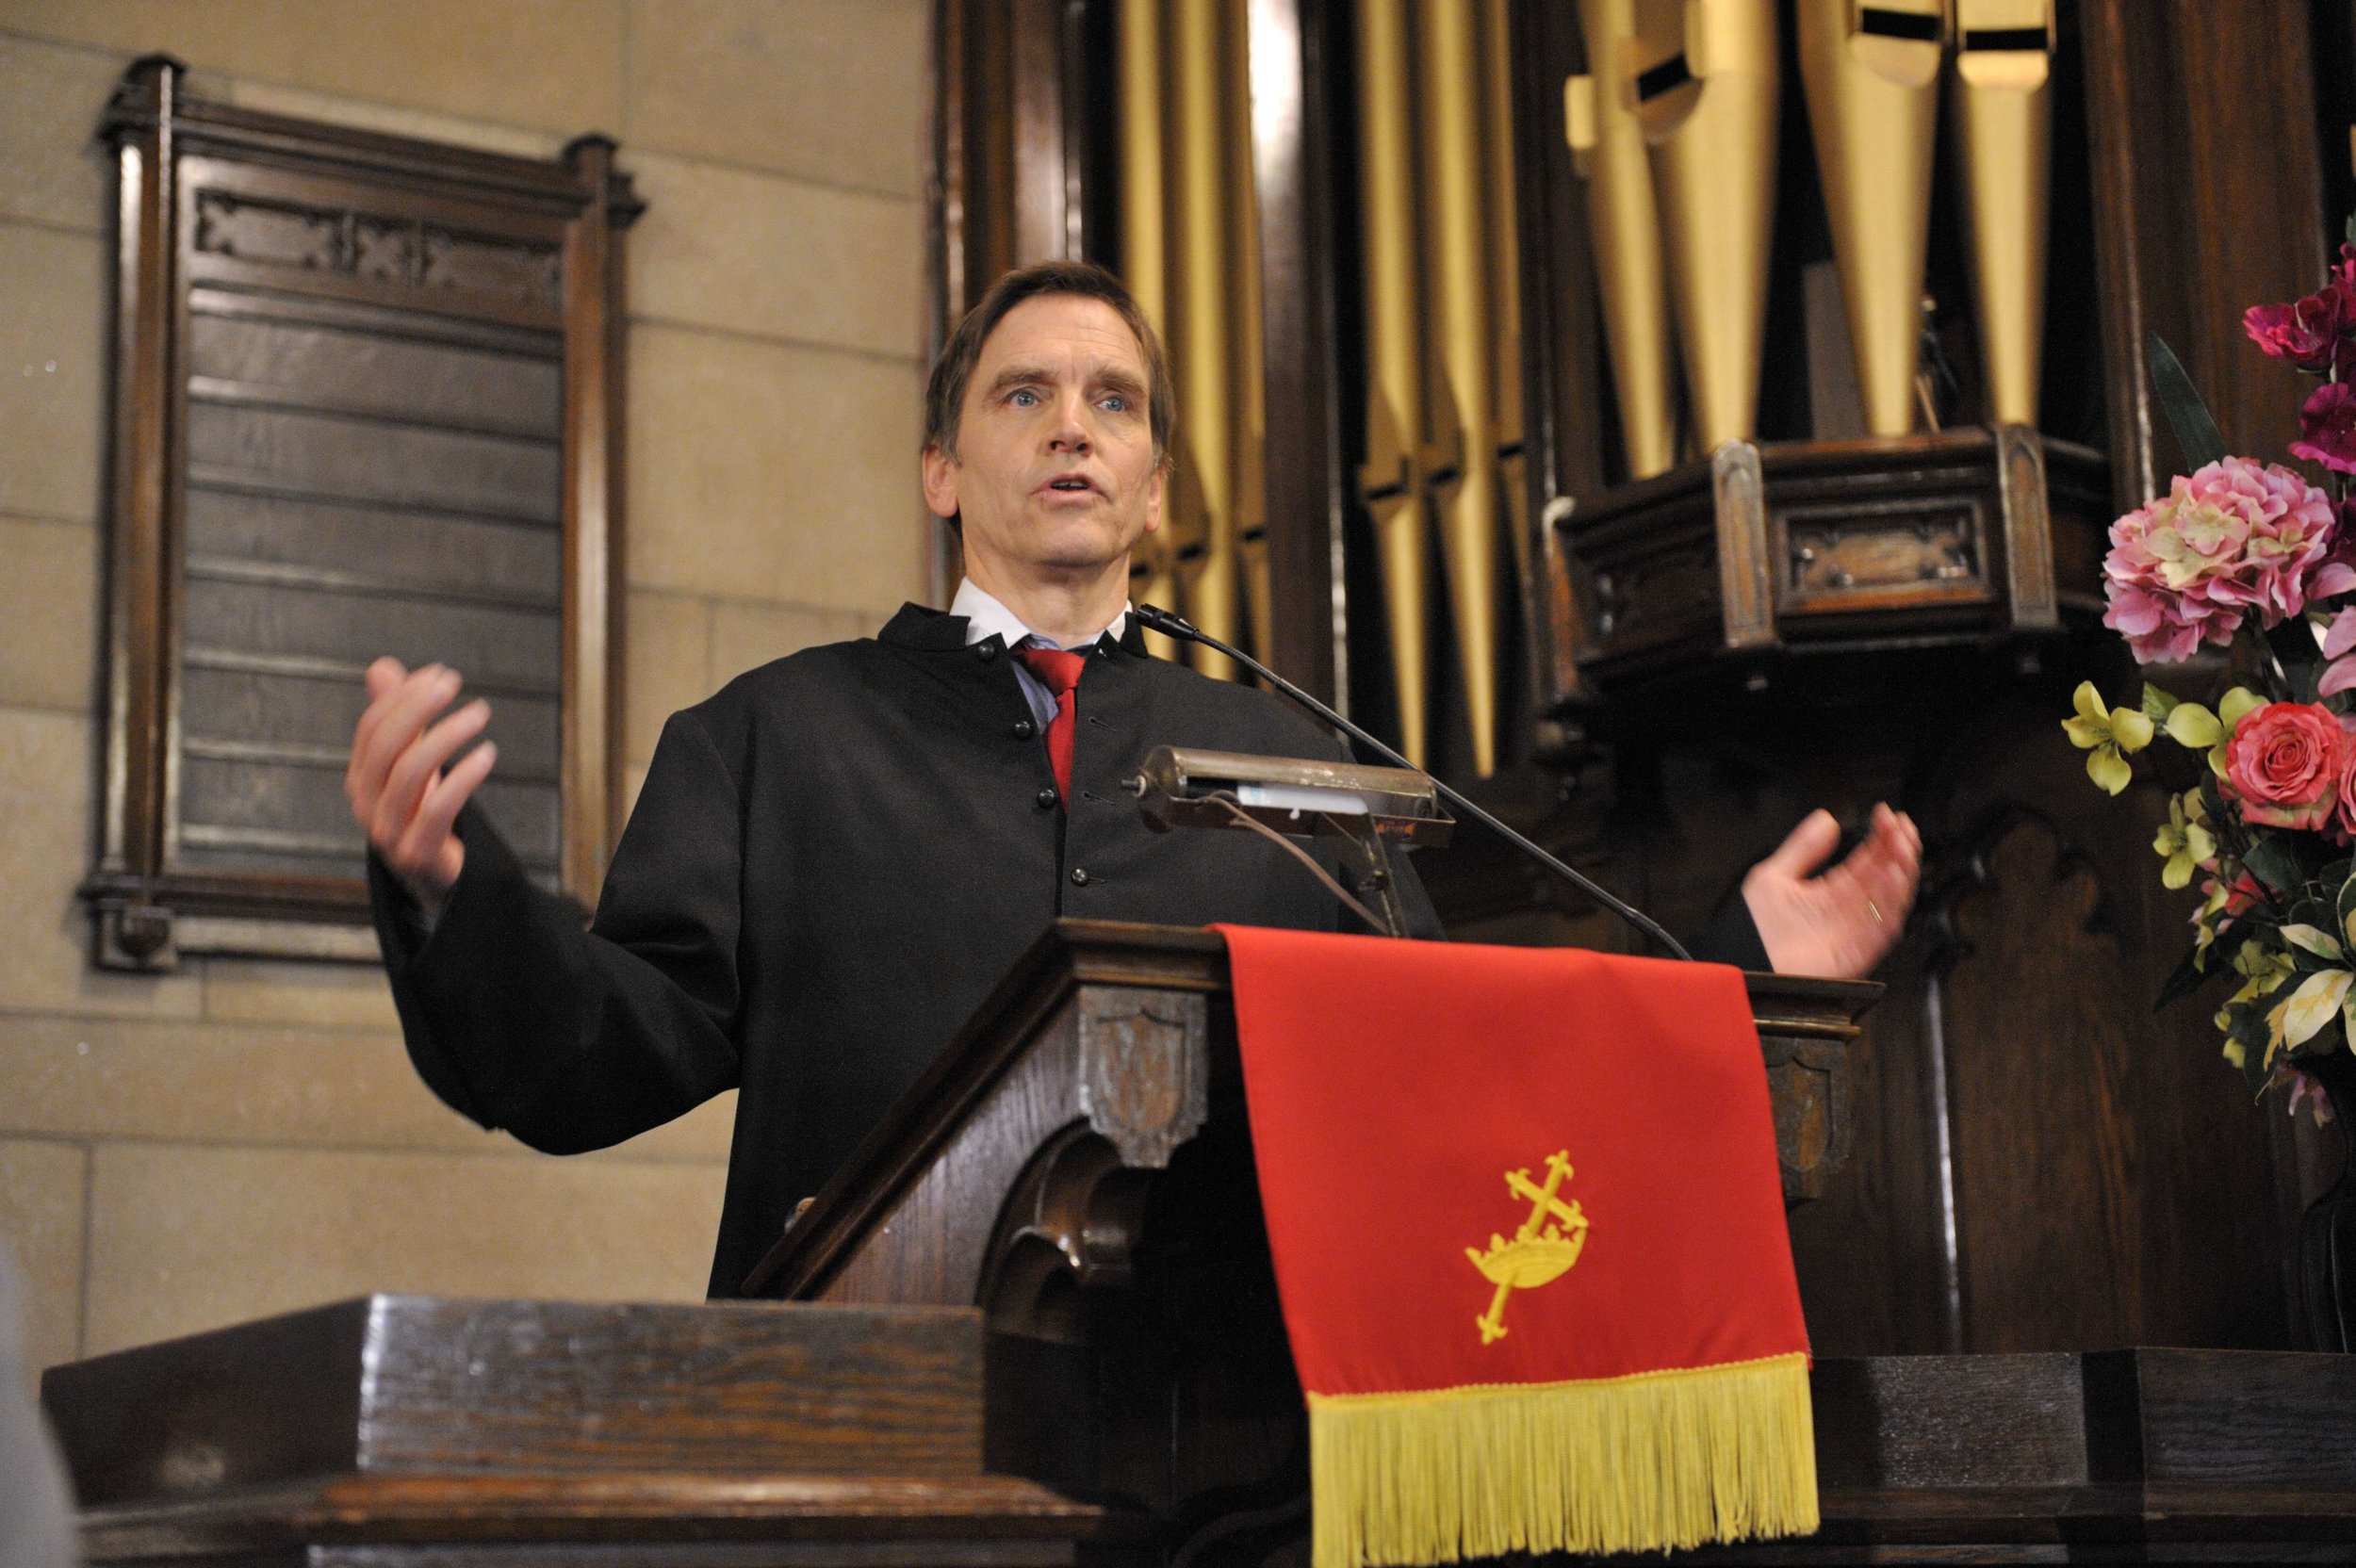 BMOSELEY:PASTOR AT PULPIT2.jpg